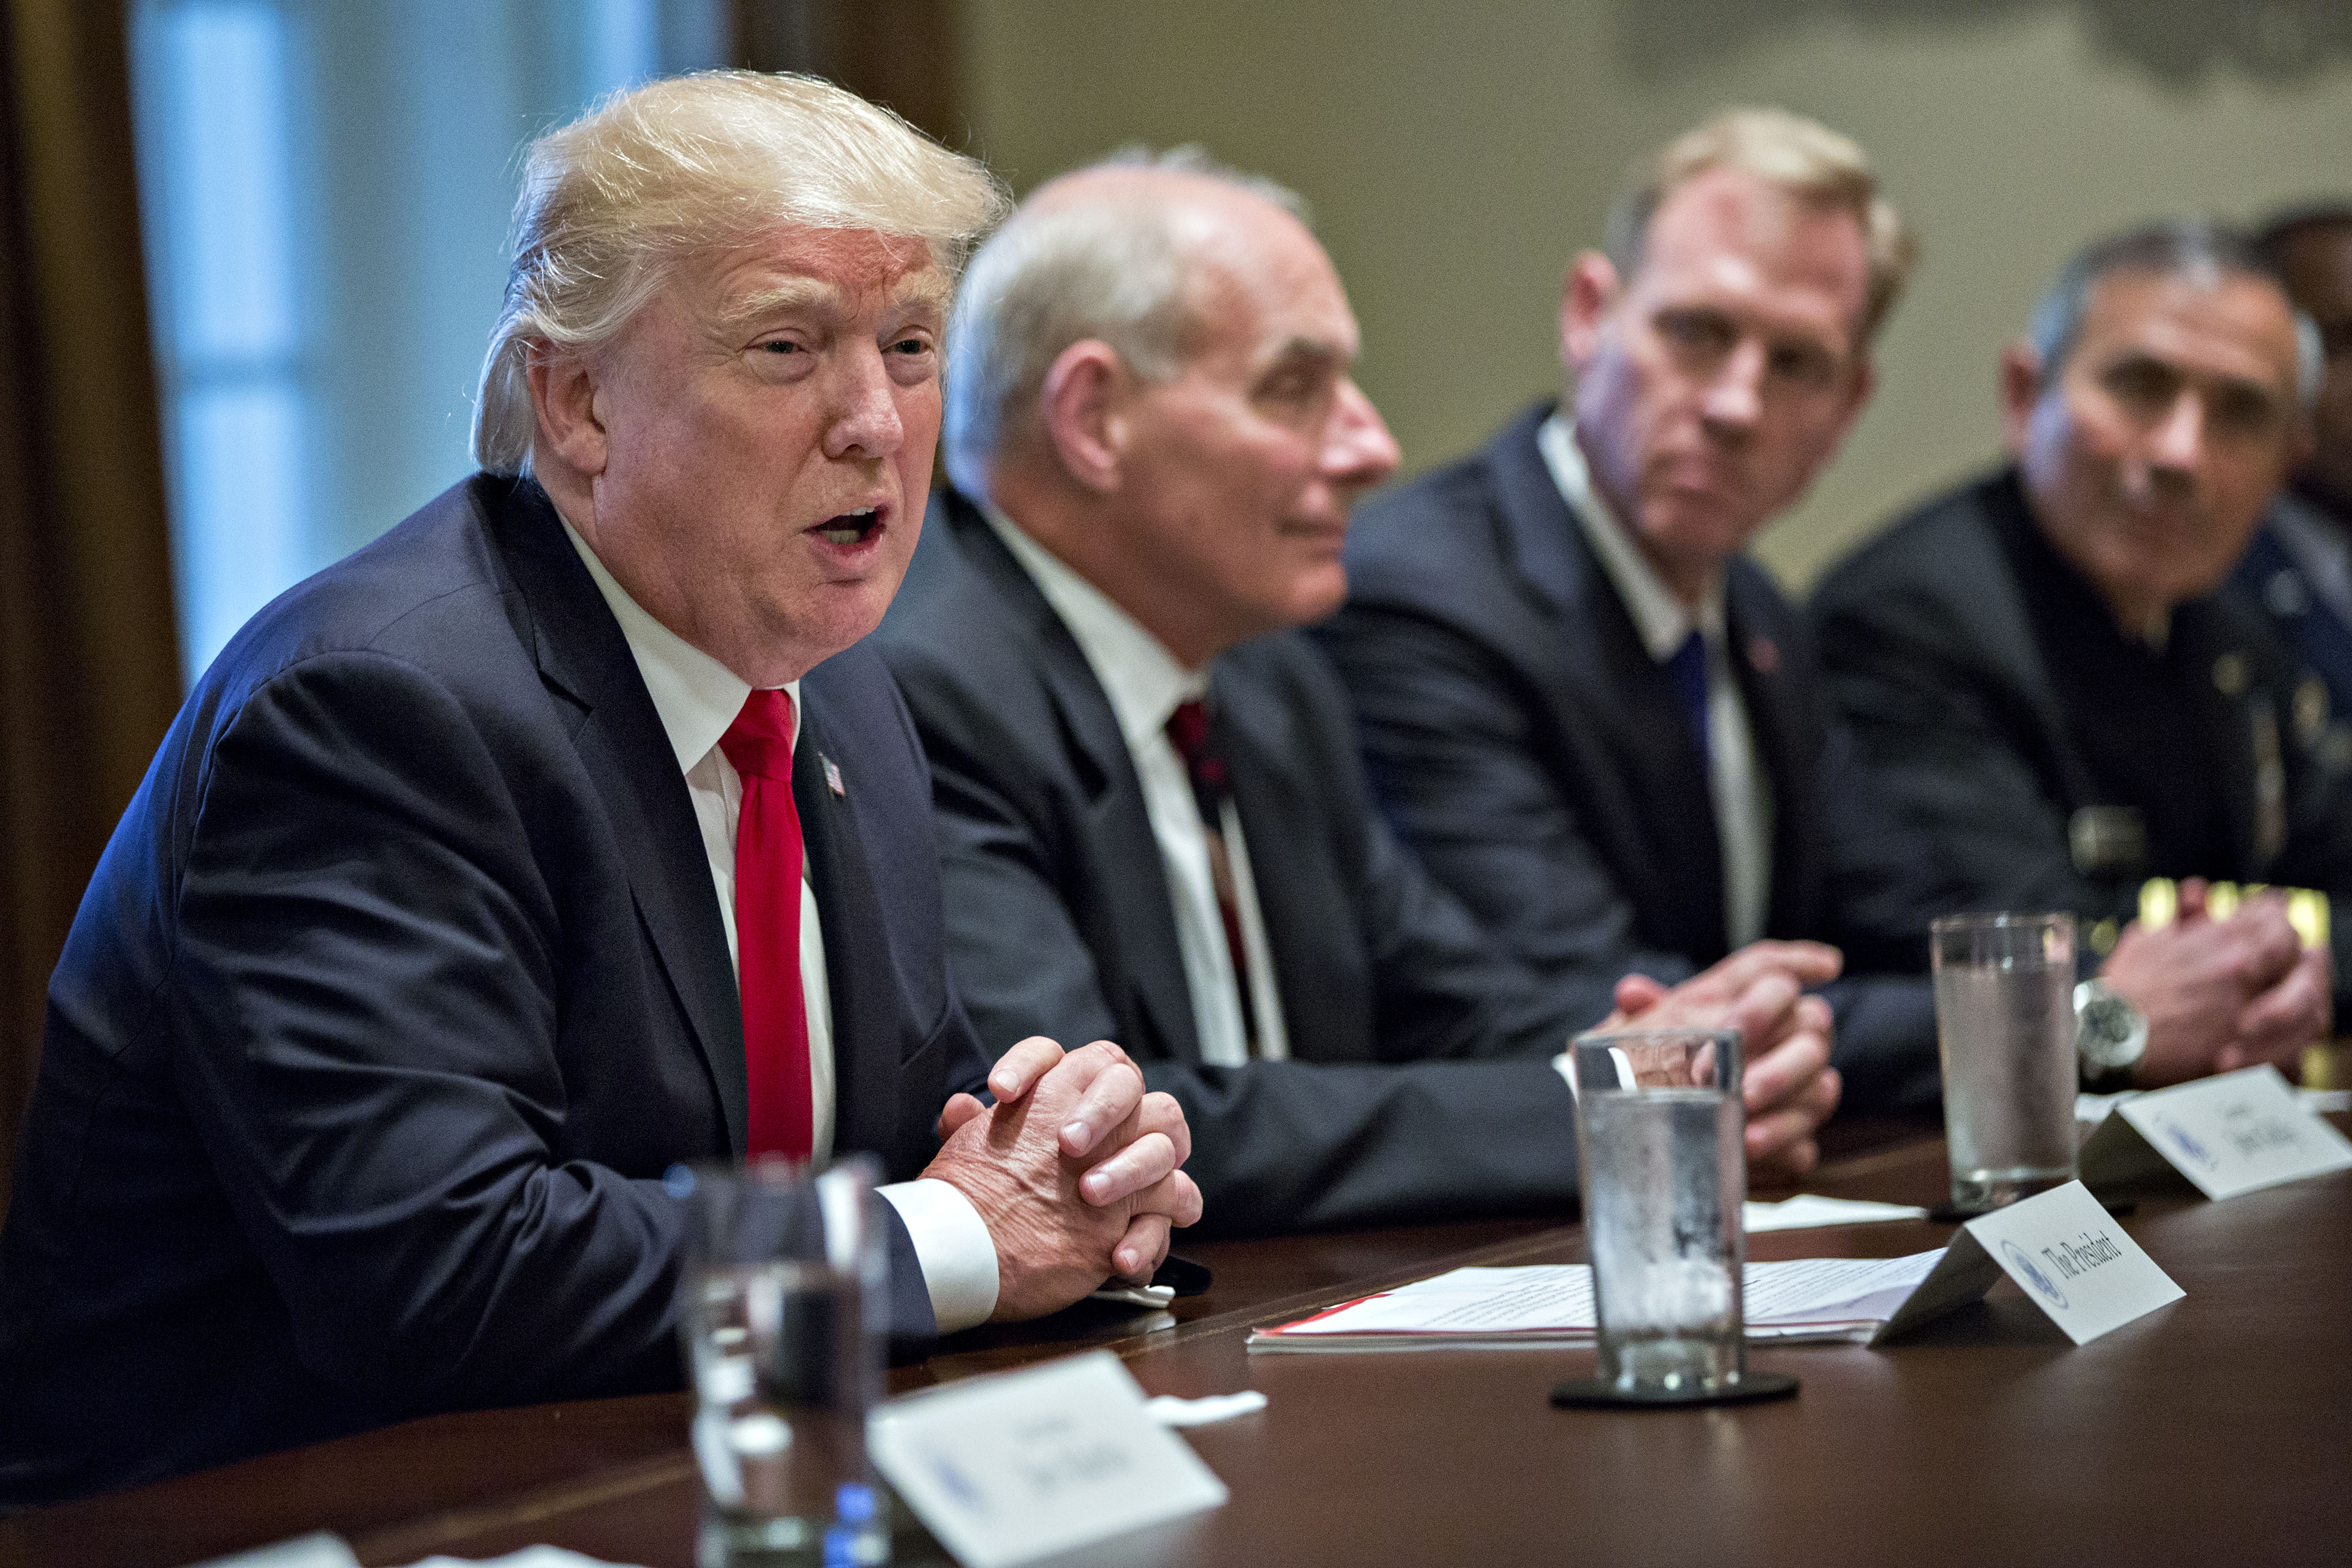 WEB President Trump Participates In Briefing With Senior Military Leaders-18 President Donald Trump speaks at a briefing with senior military leaders in the Cabinet Room of the White House on Oct. 5 in Washington.